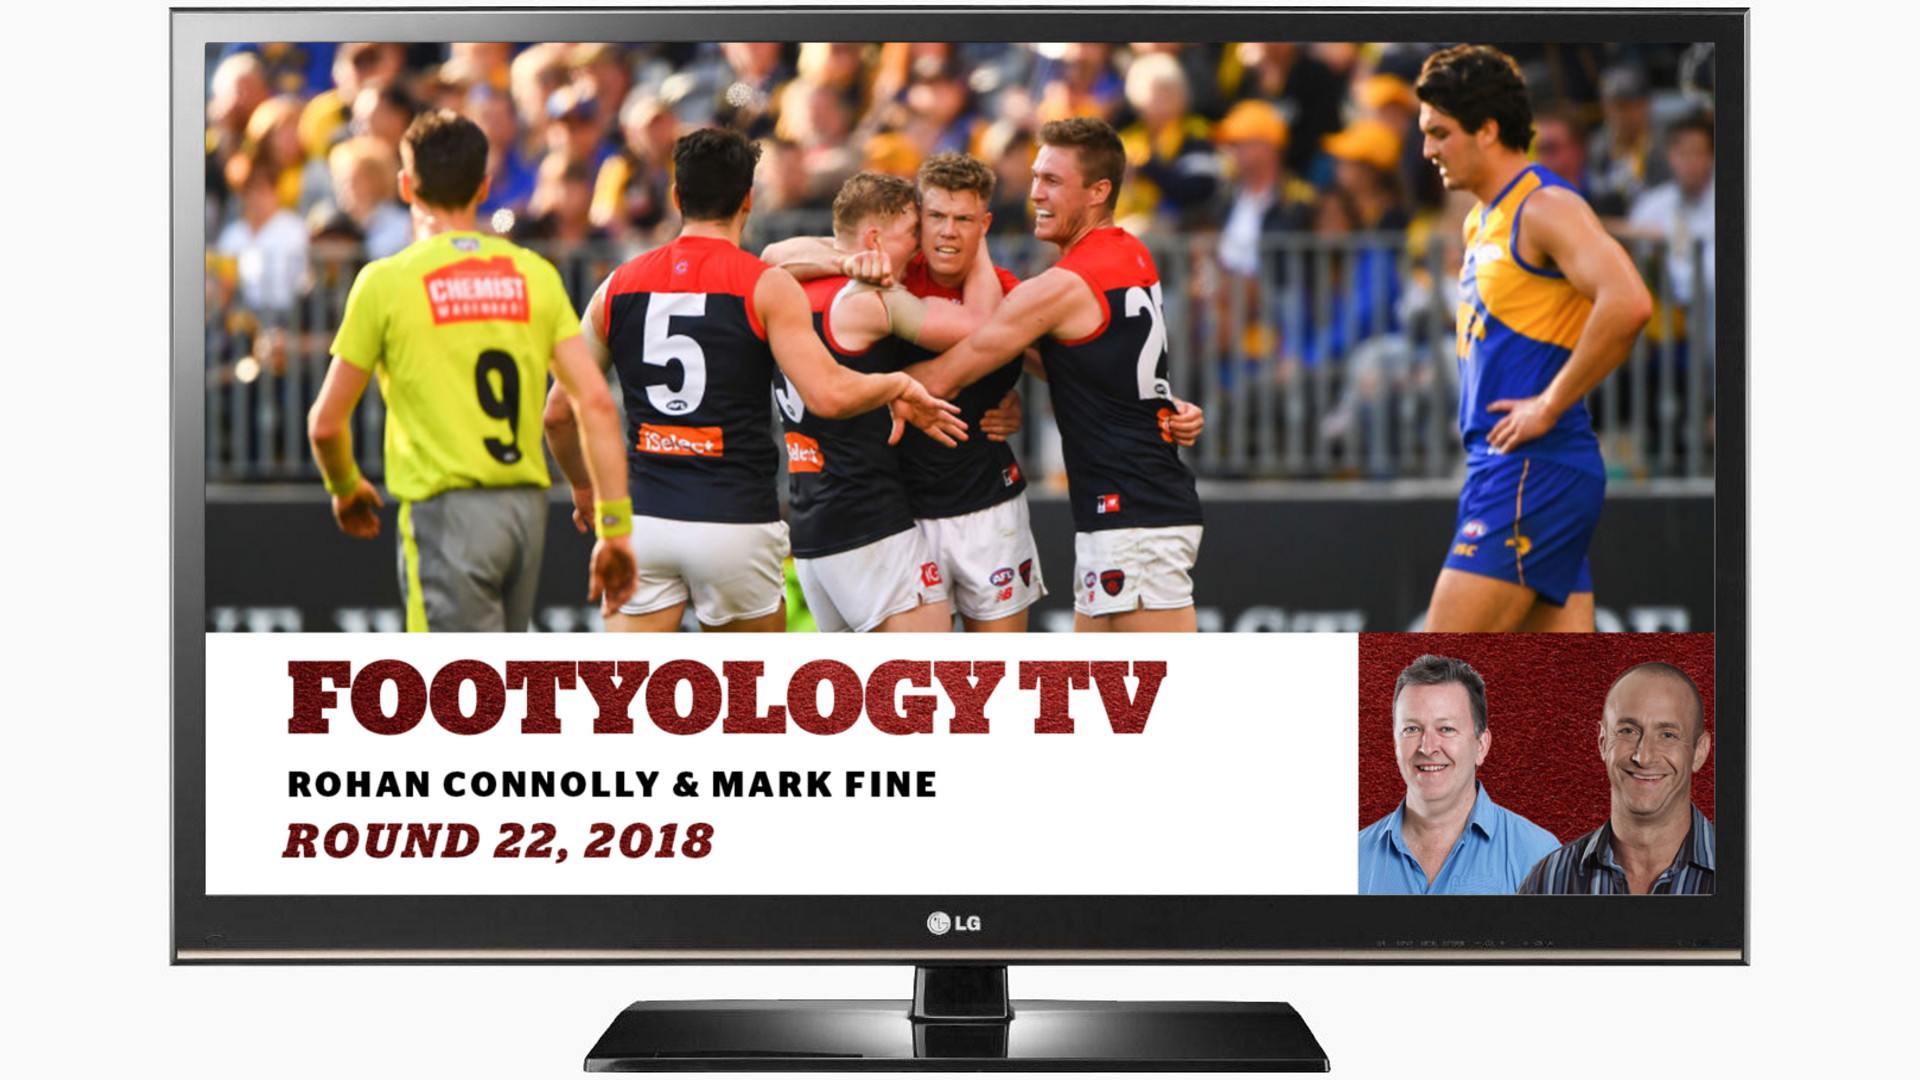 Footyology TV - Monday 20th August 2018